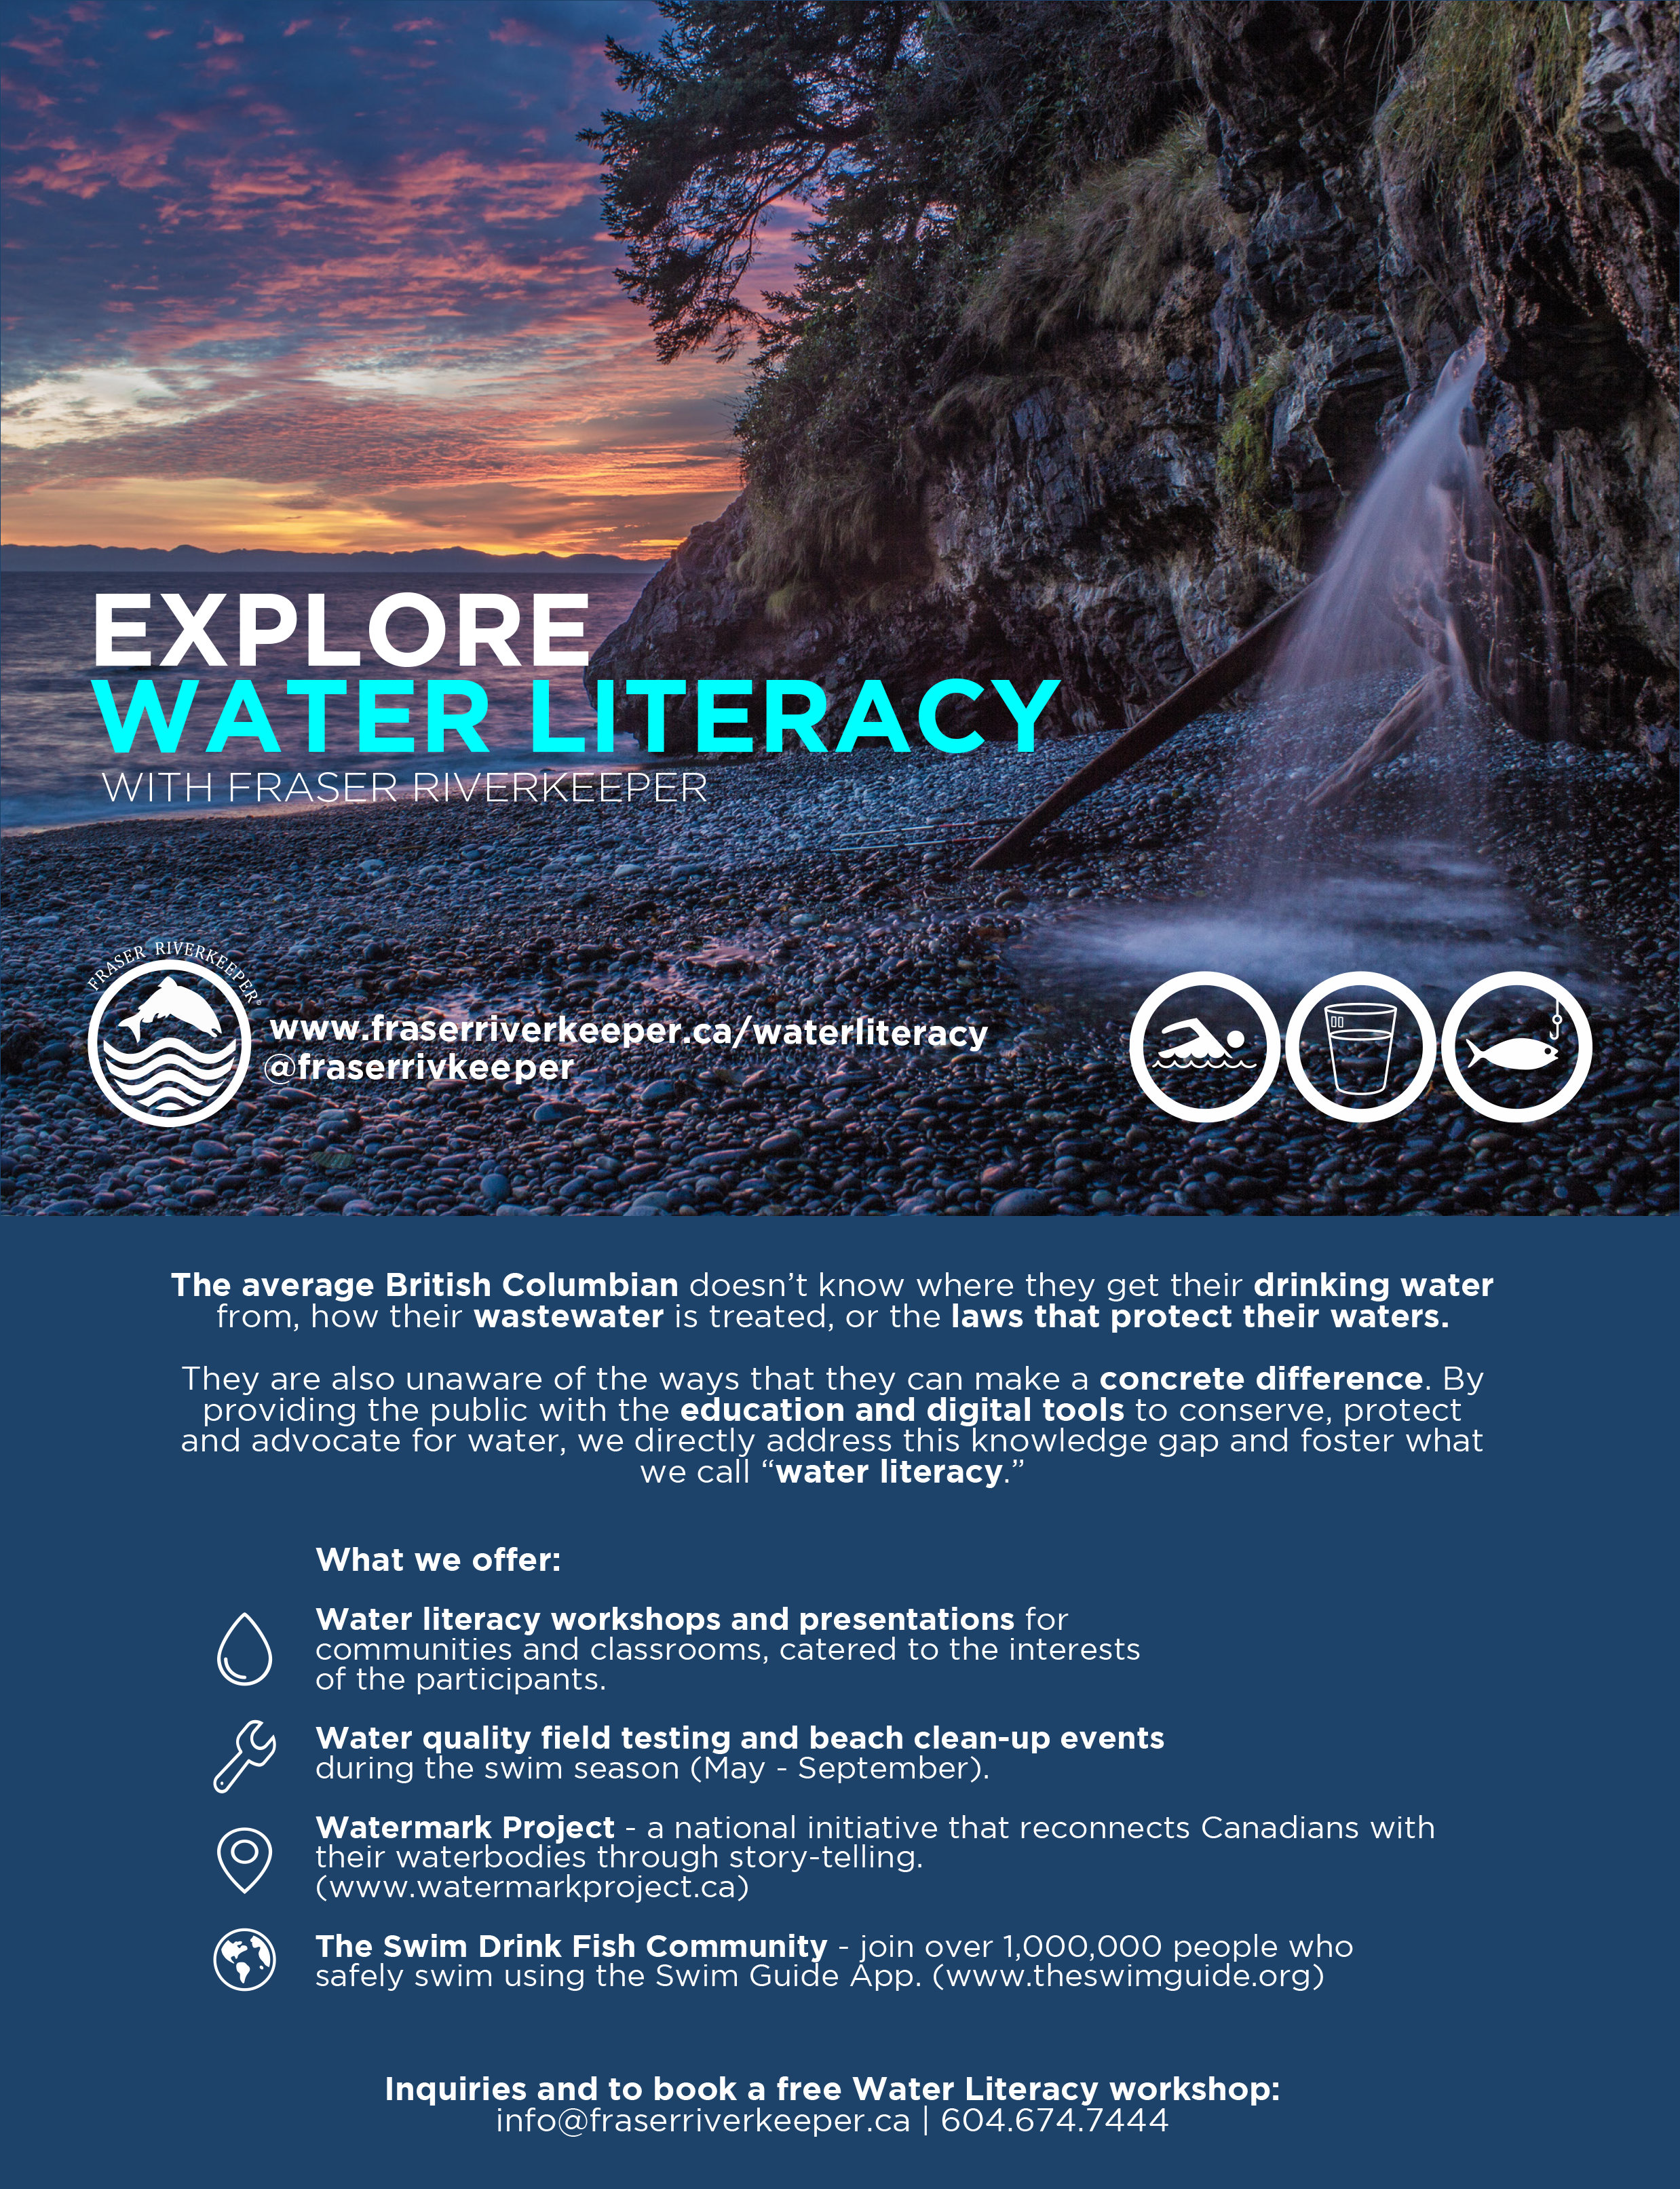 WaterLiteracyInfographic.png